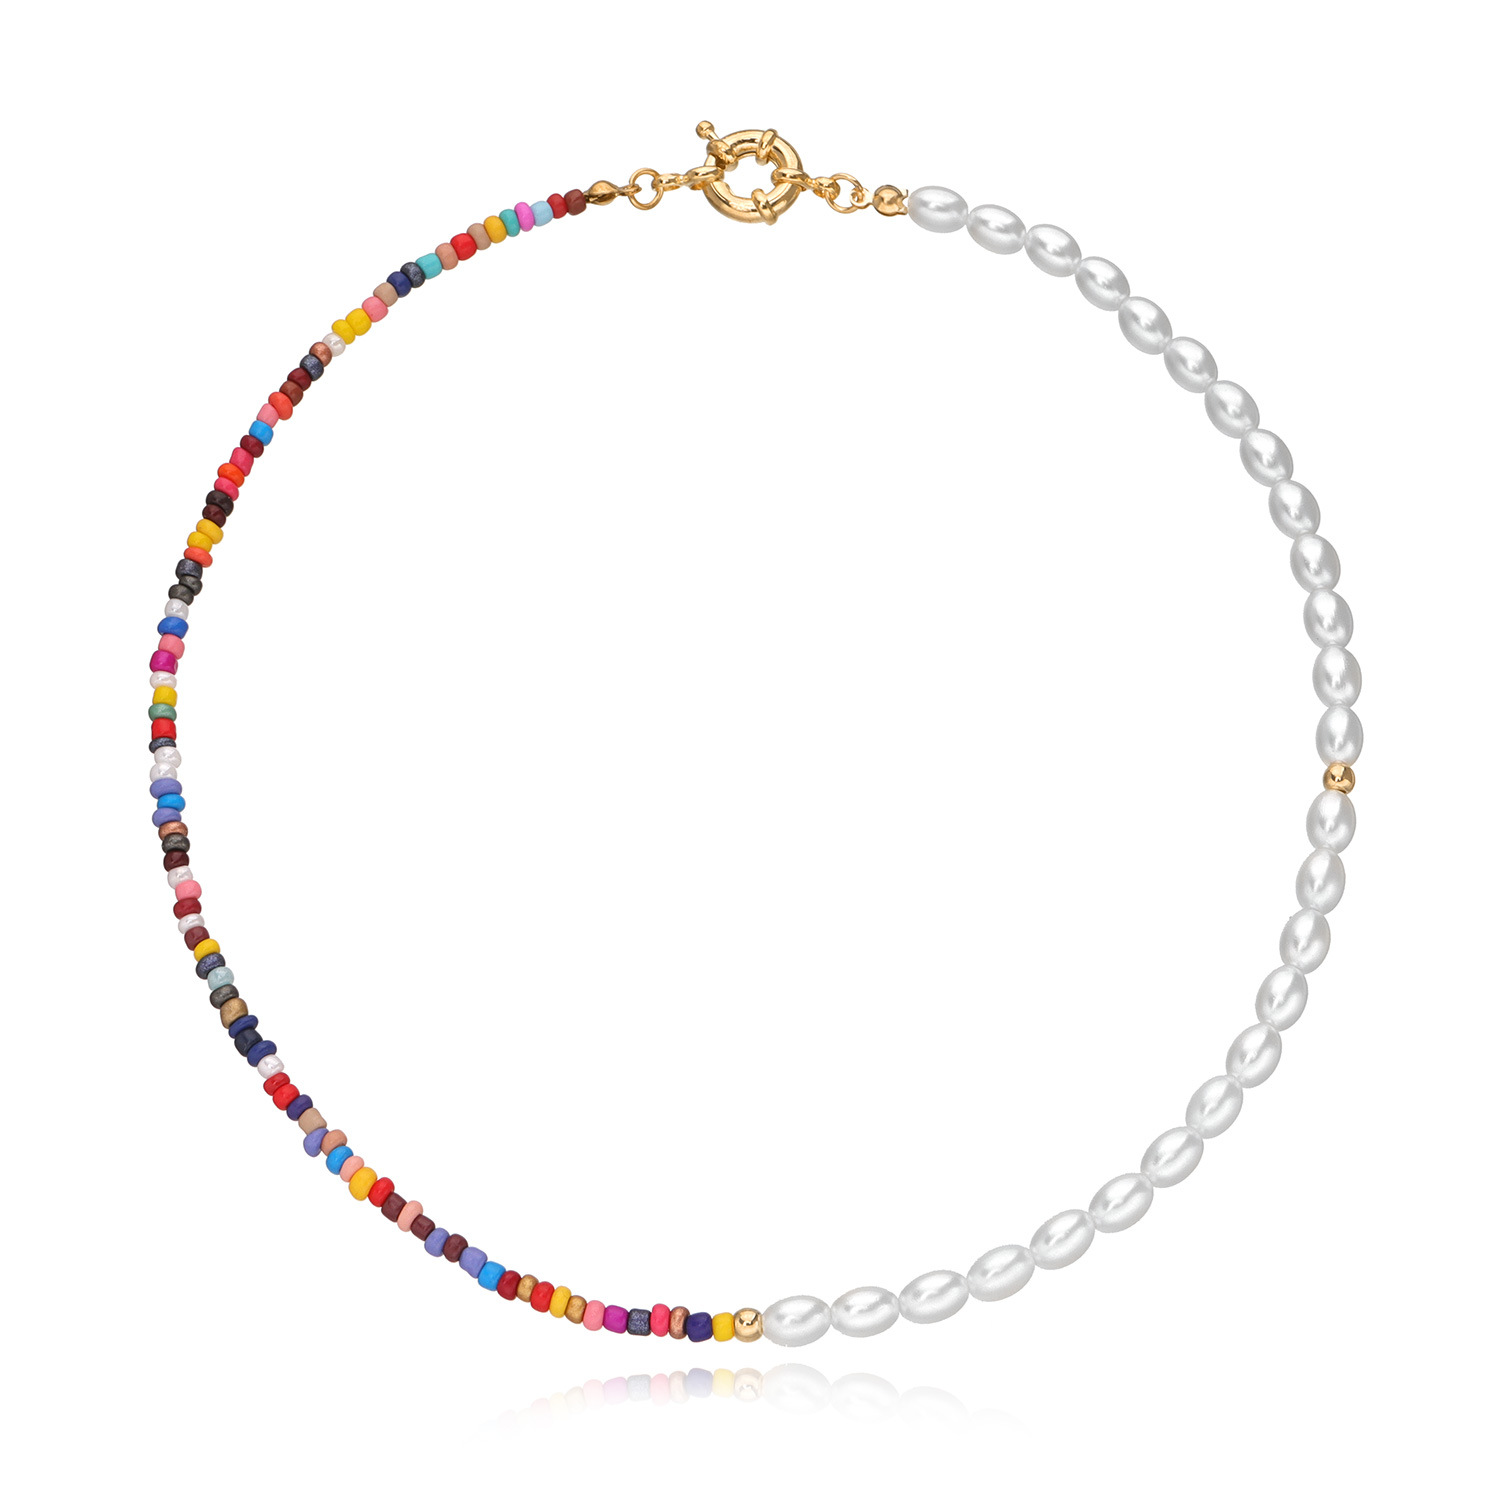 Handmade Pearl Choker Necklace Colorful Seed Beads Bohemia Collar Summer Beach Party For Women Girls Fashion Jewelry Party Gifts